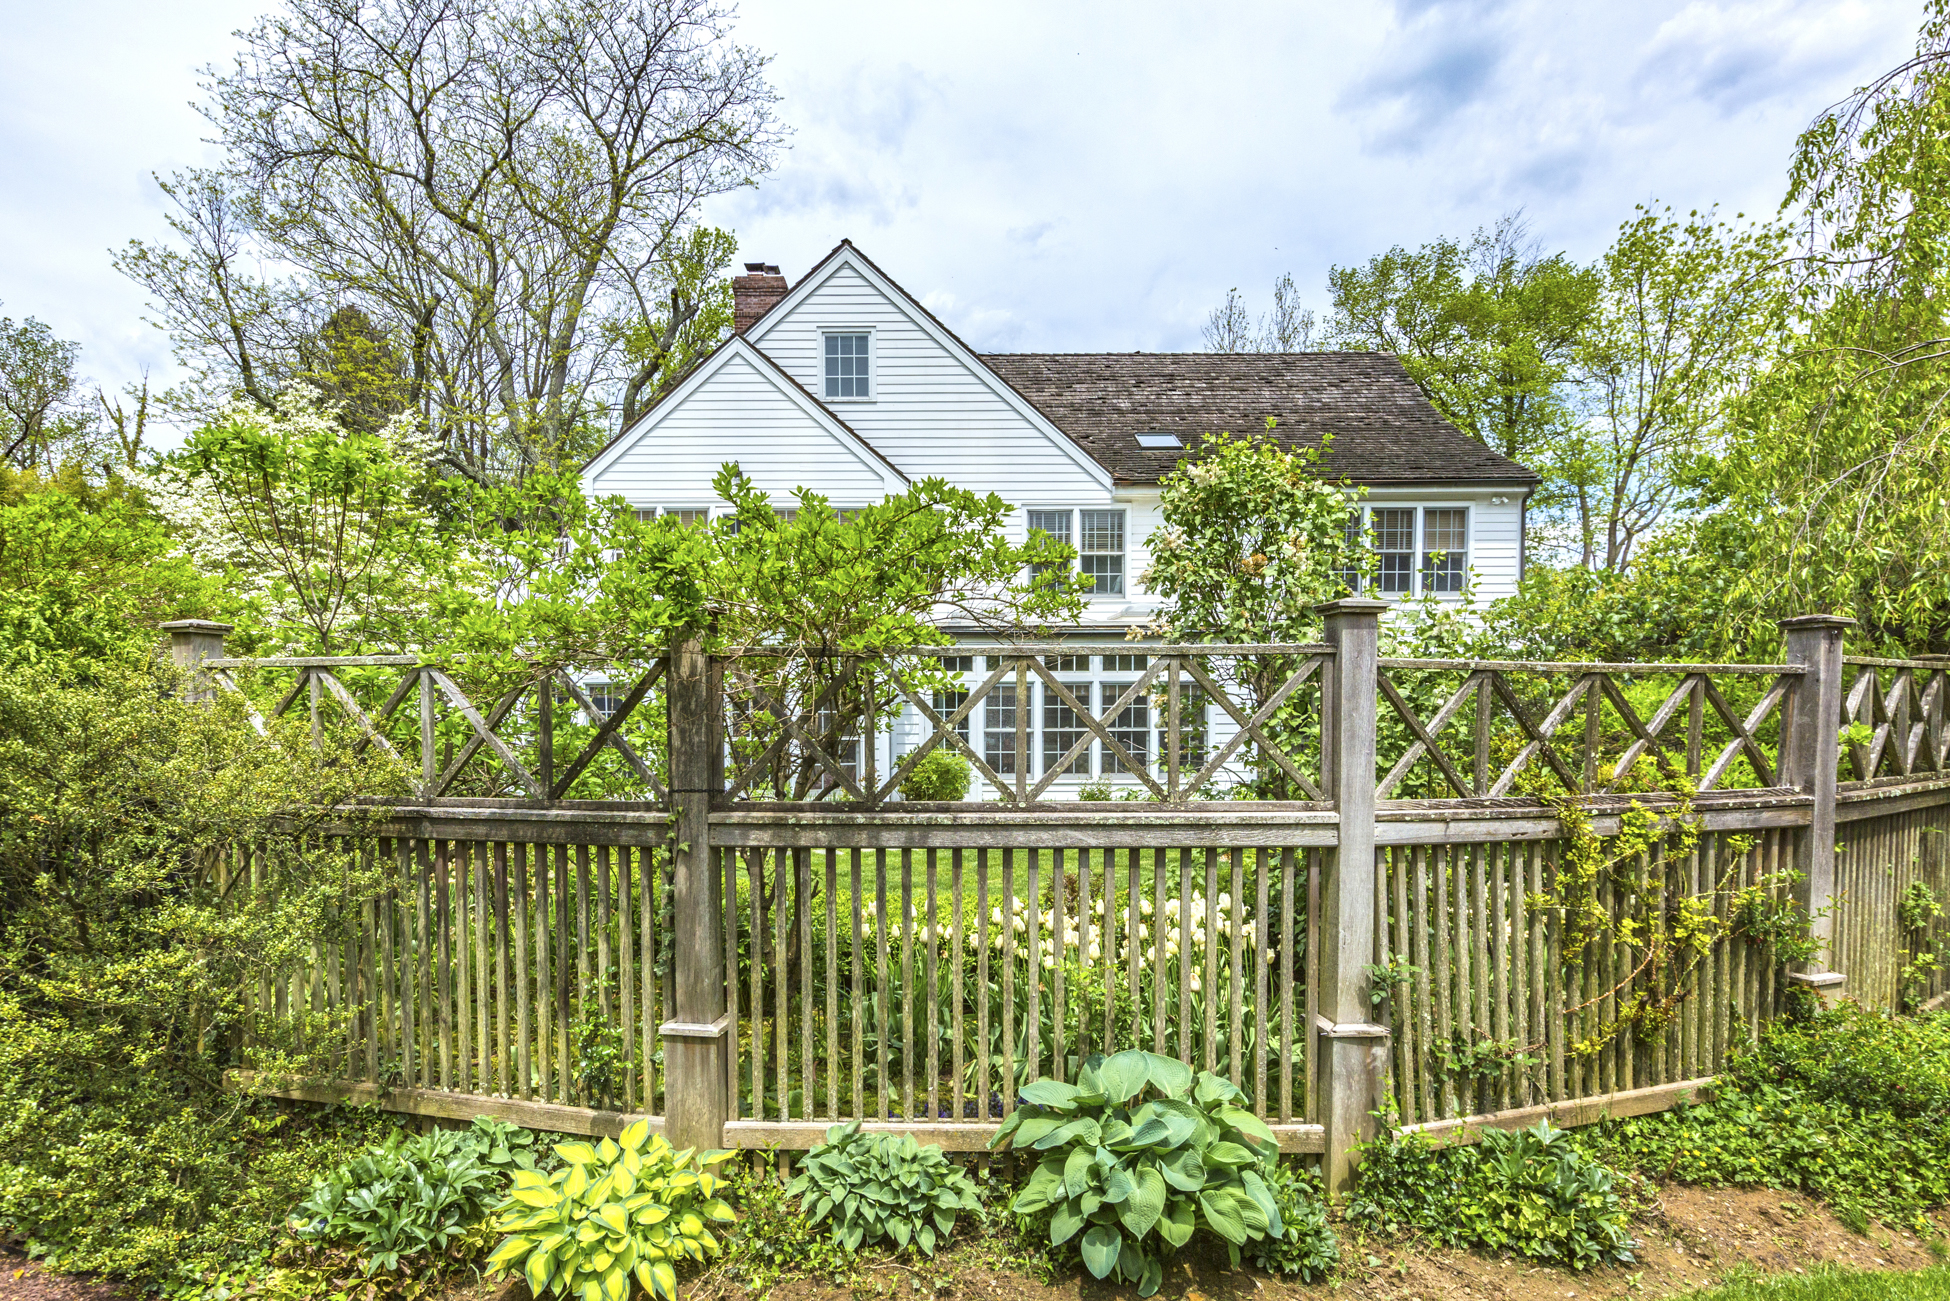 Additional photo for property listing at Western Section Beauty Encircled by Lovely Gardens 1 Campbelton Circle Princeton, New Jersey 08540 États-Unis